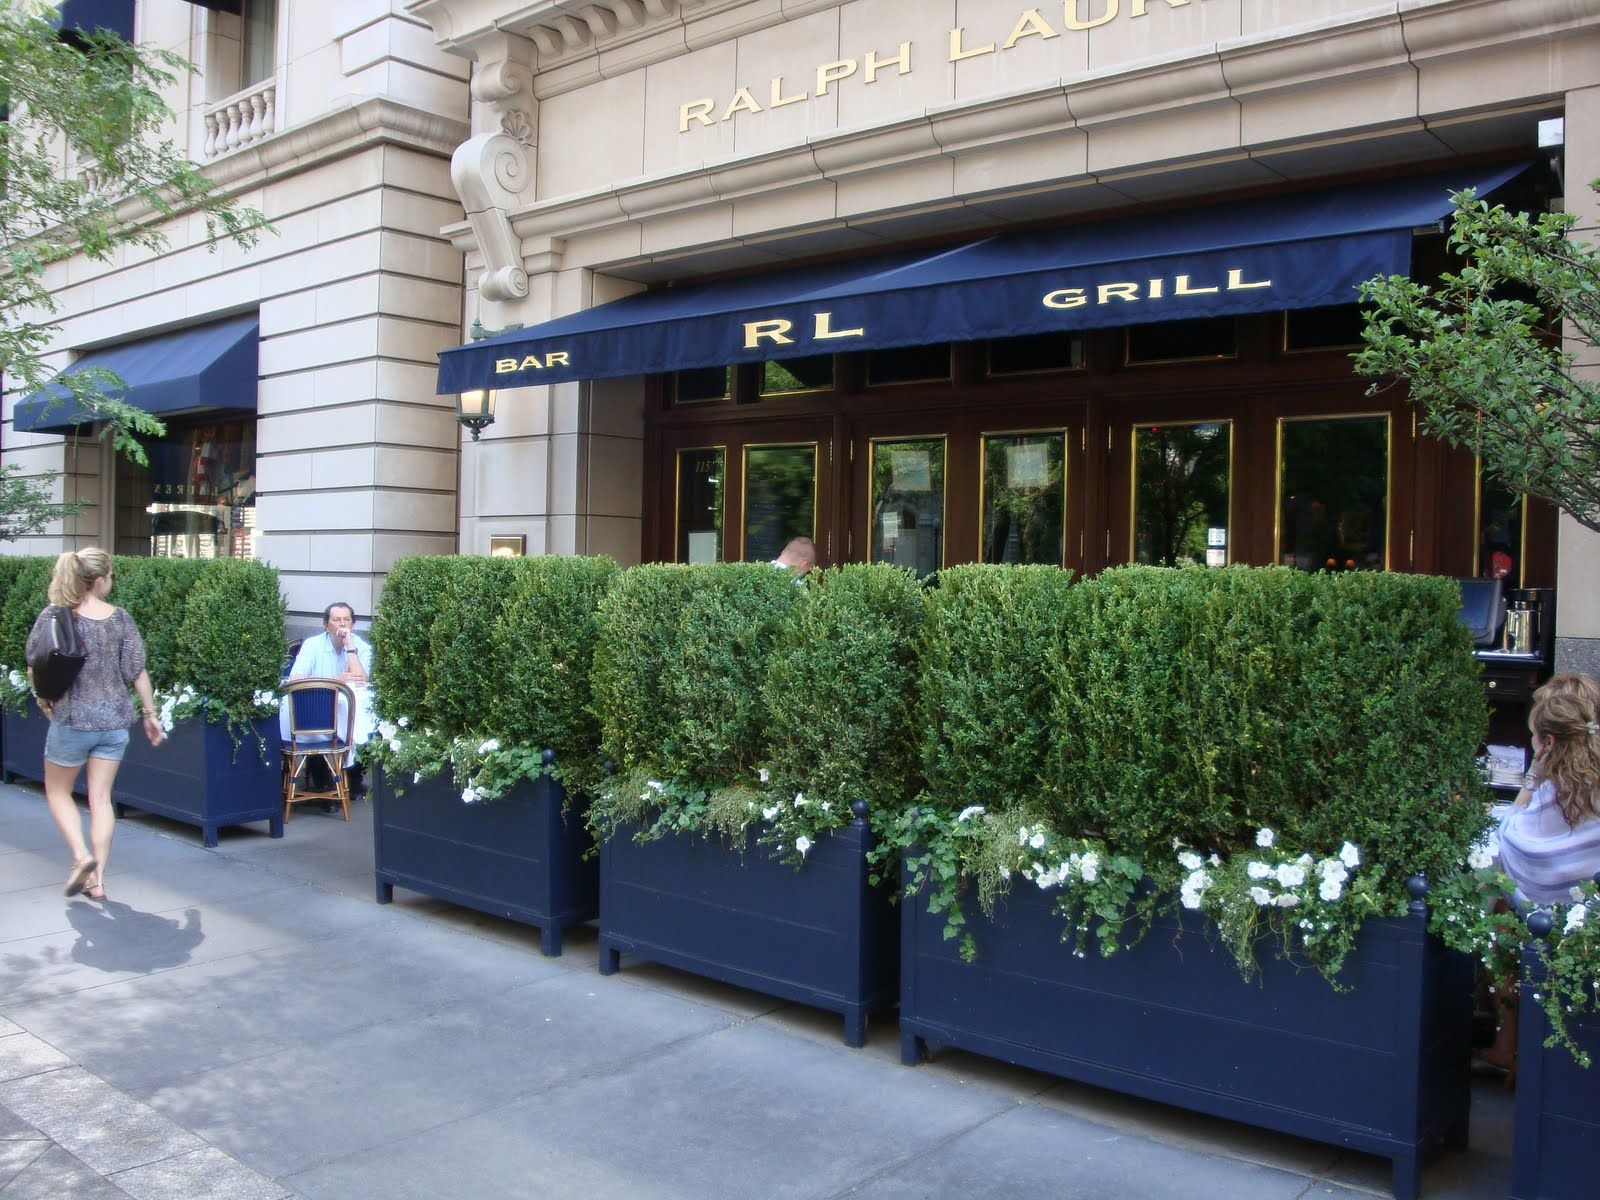 outdoor patio at ralph lauren restaurant in chicago our favorite spring and summer lunch spot. Black Bedroom Furniture Sets. Home Design Ideas